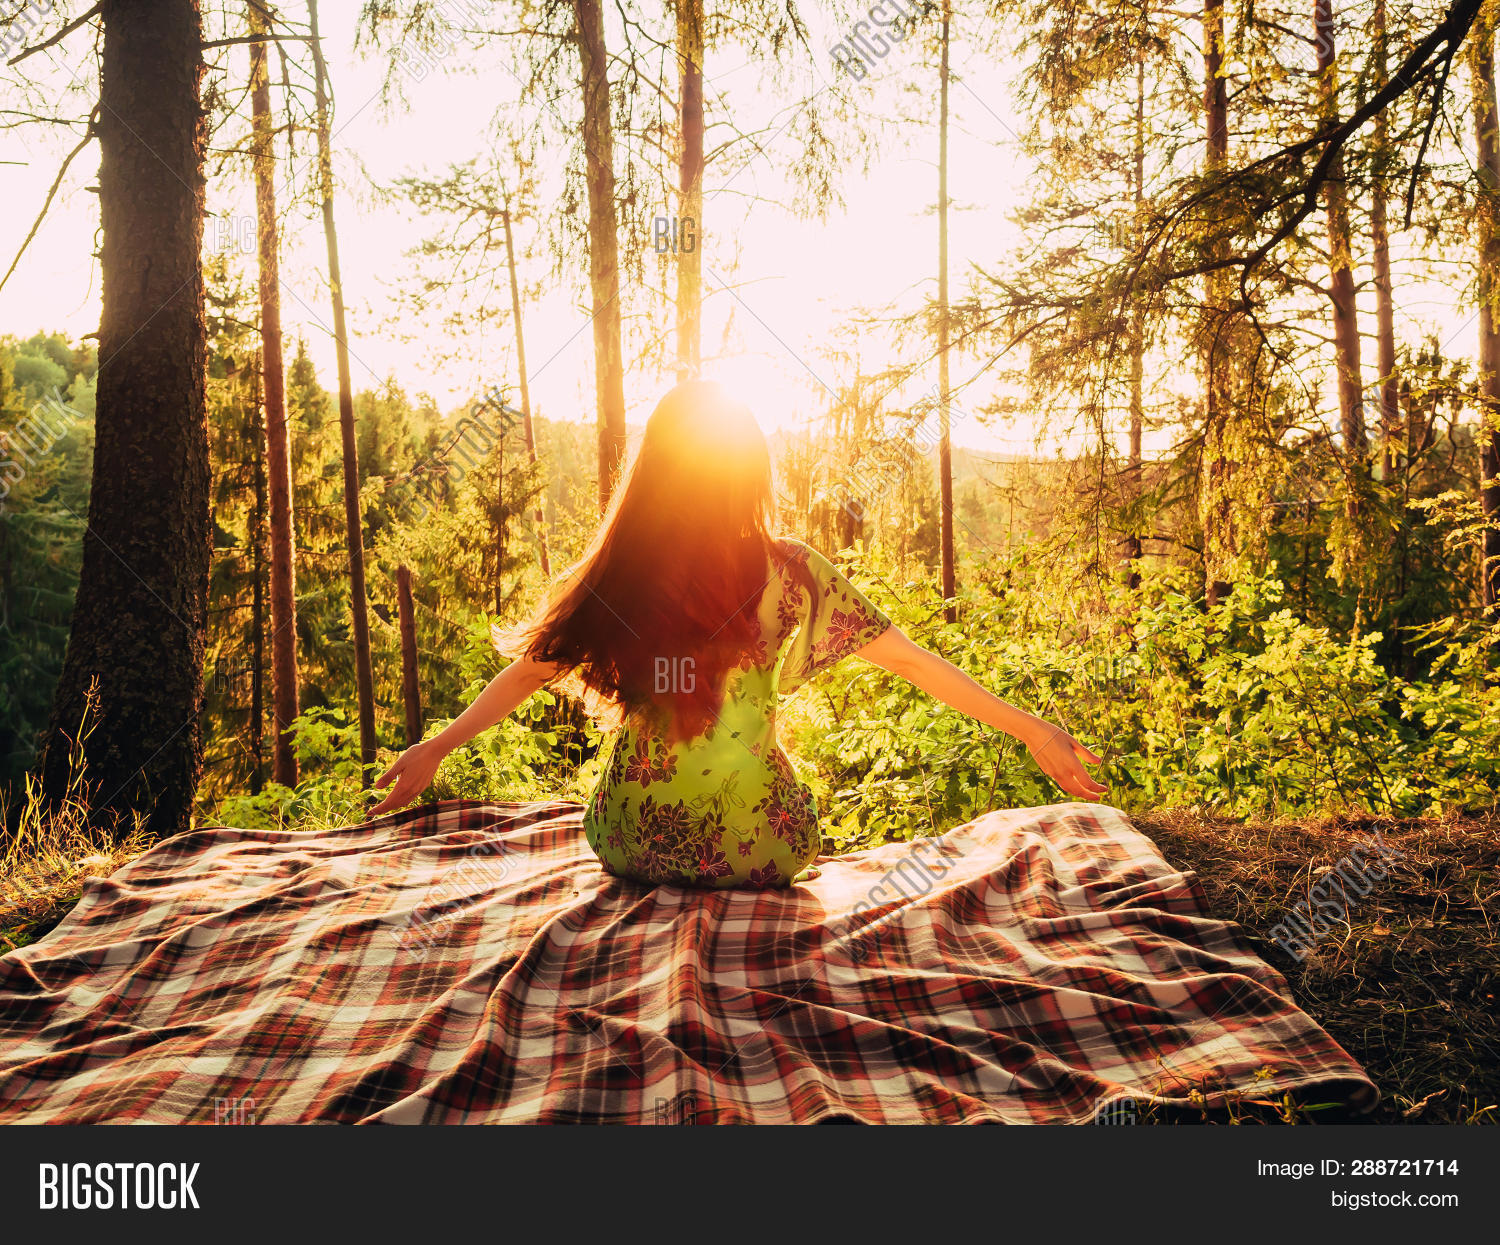 arm,back,beautiful,beauty,bright,caucasian,dawn,energy,enjoy,enjoyment,female,forest,free,freedom,girl,hand,happiness,happy,inspiration,joy,joyful,leisure,lifestyle,light,morning,natural,nature,one,open,outdoor,outstretched,people,person,relaxation,rest,silhouette,spring,summer,summertime,sun,sunlight,sunny,sunrise,sunset,sunshine,tree,vacation,view,woman,young